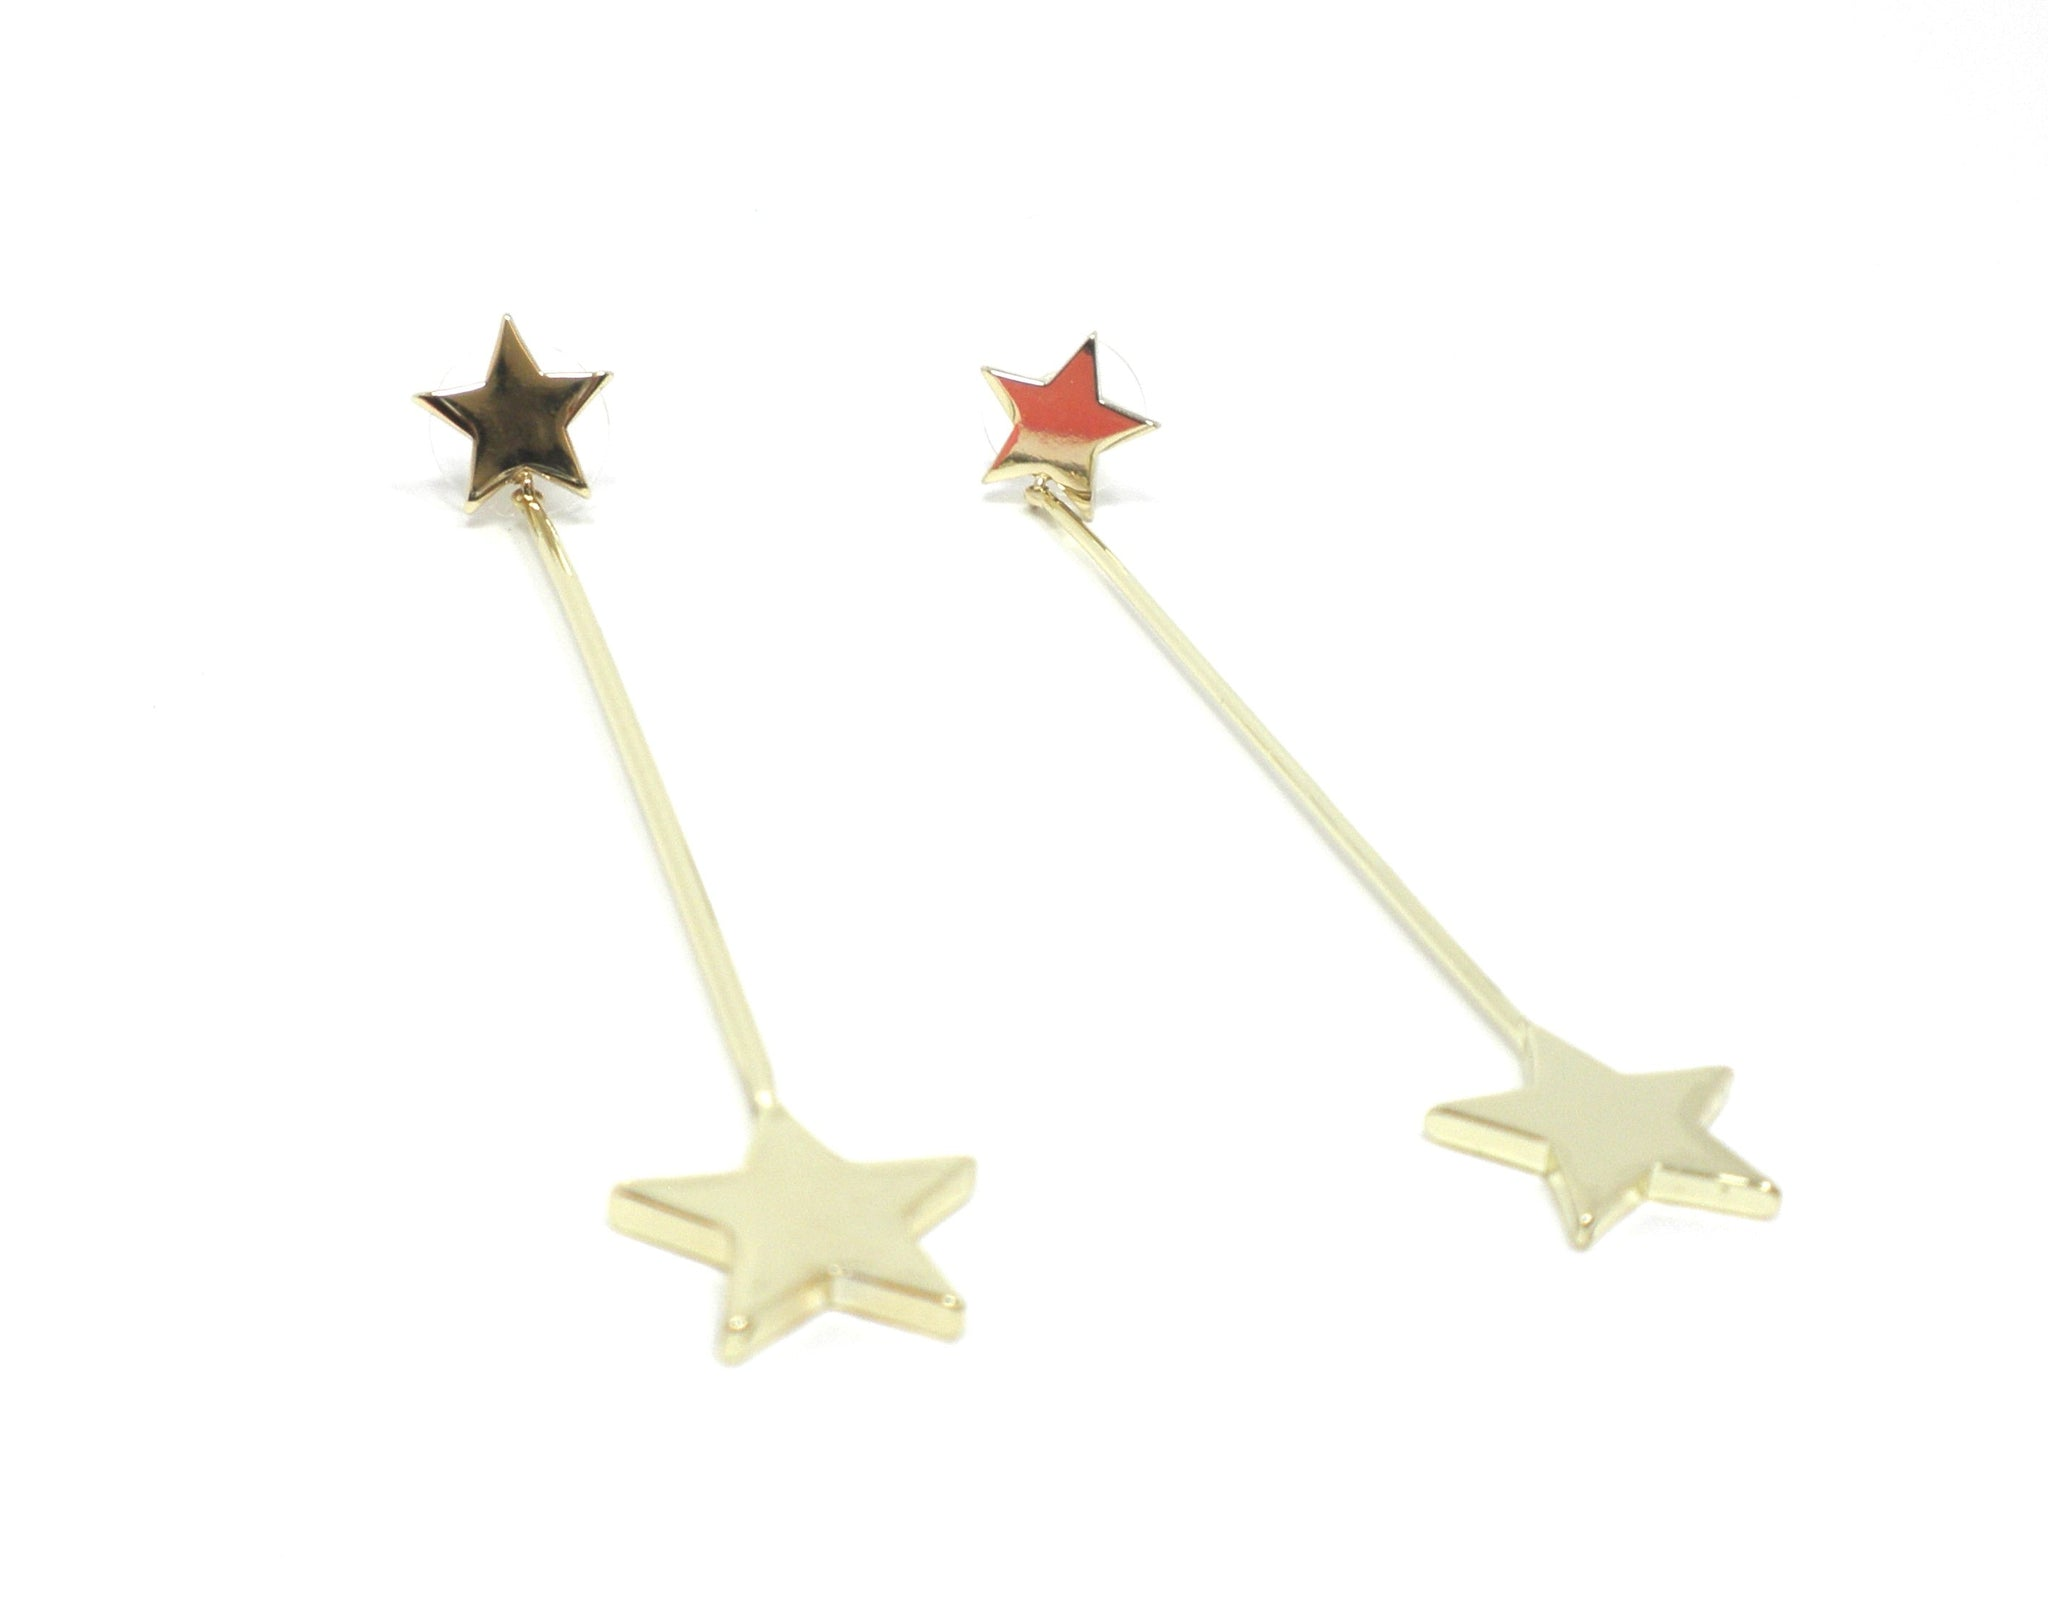 Stella & Ruby Gold Star Earrings - Donated From The Designer - The Fashion Foundation